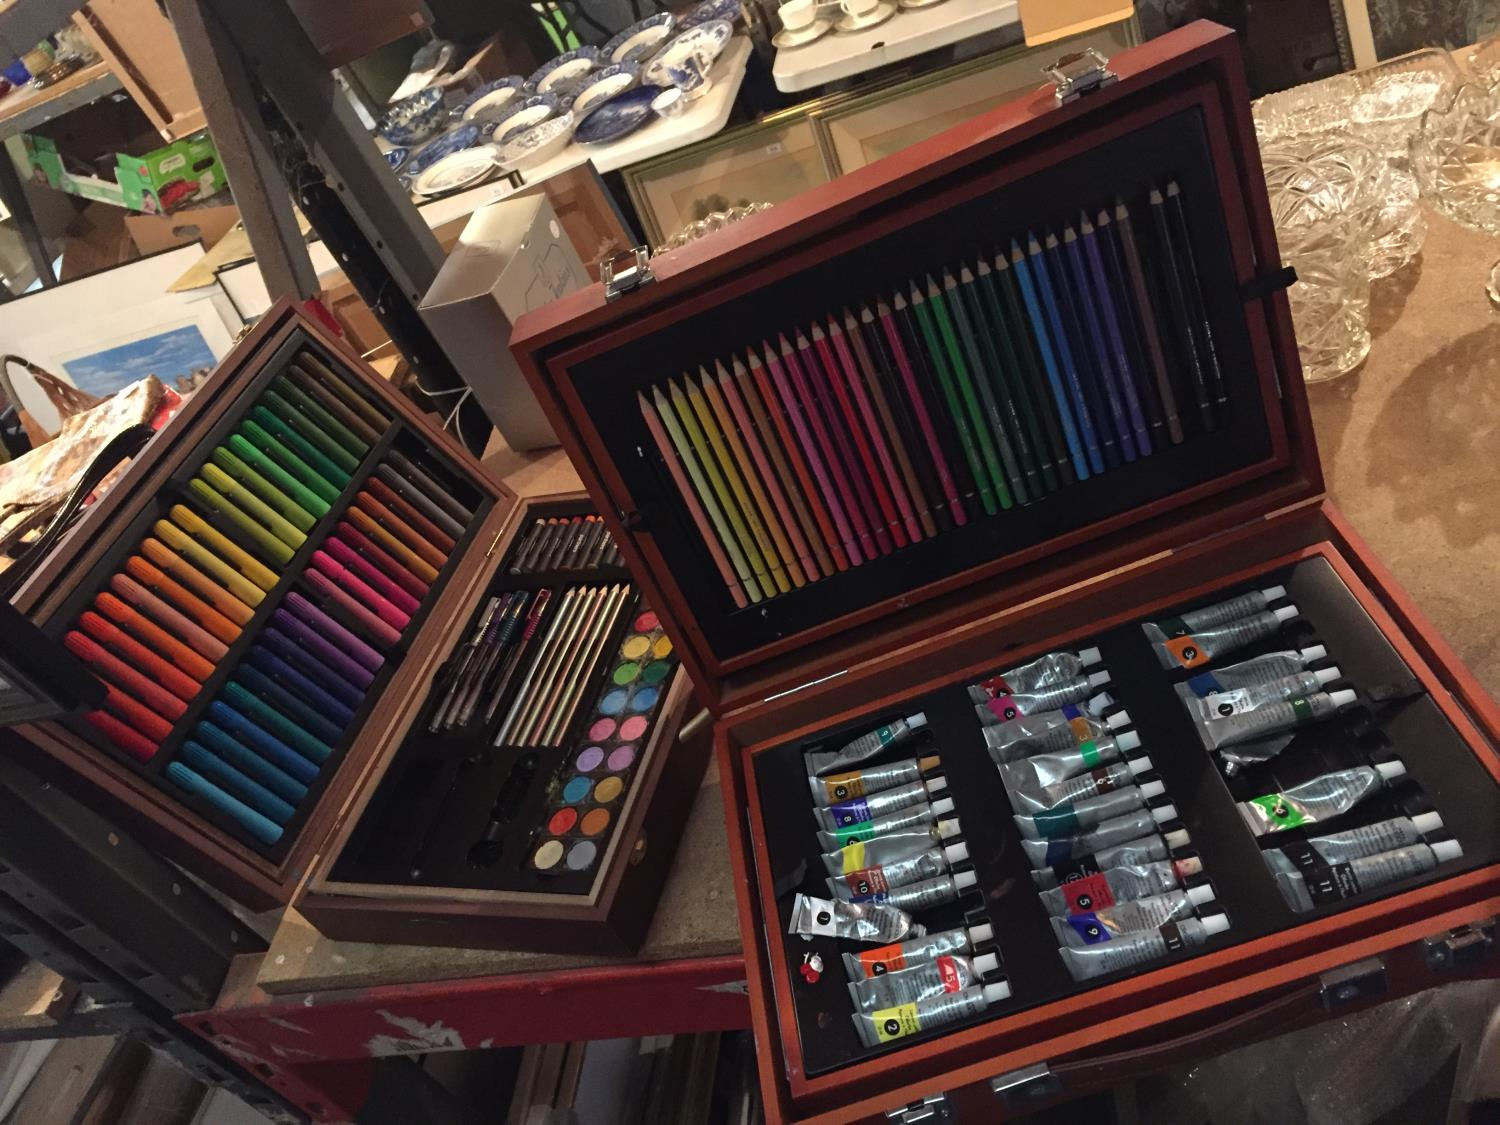 TWO CASES OF ART SUPPLIES TO INCLUDE FELT TIPS, PENCILS, OIL PAINTS ETC